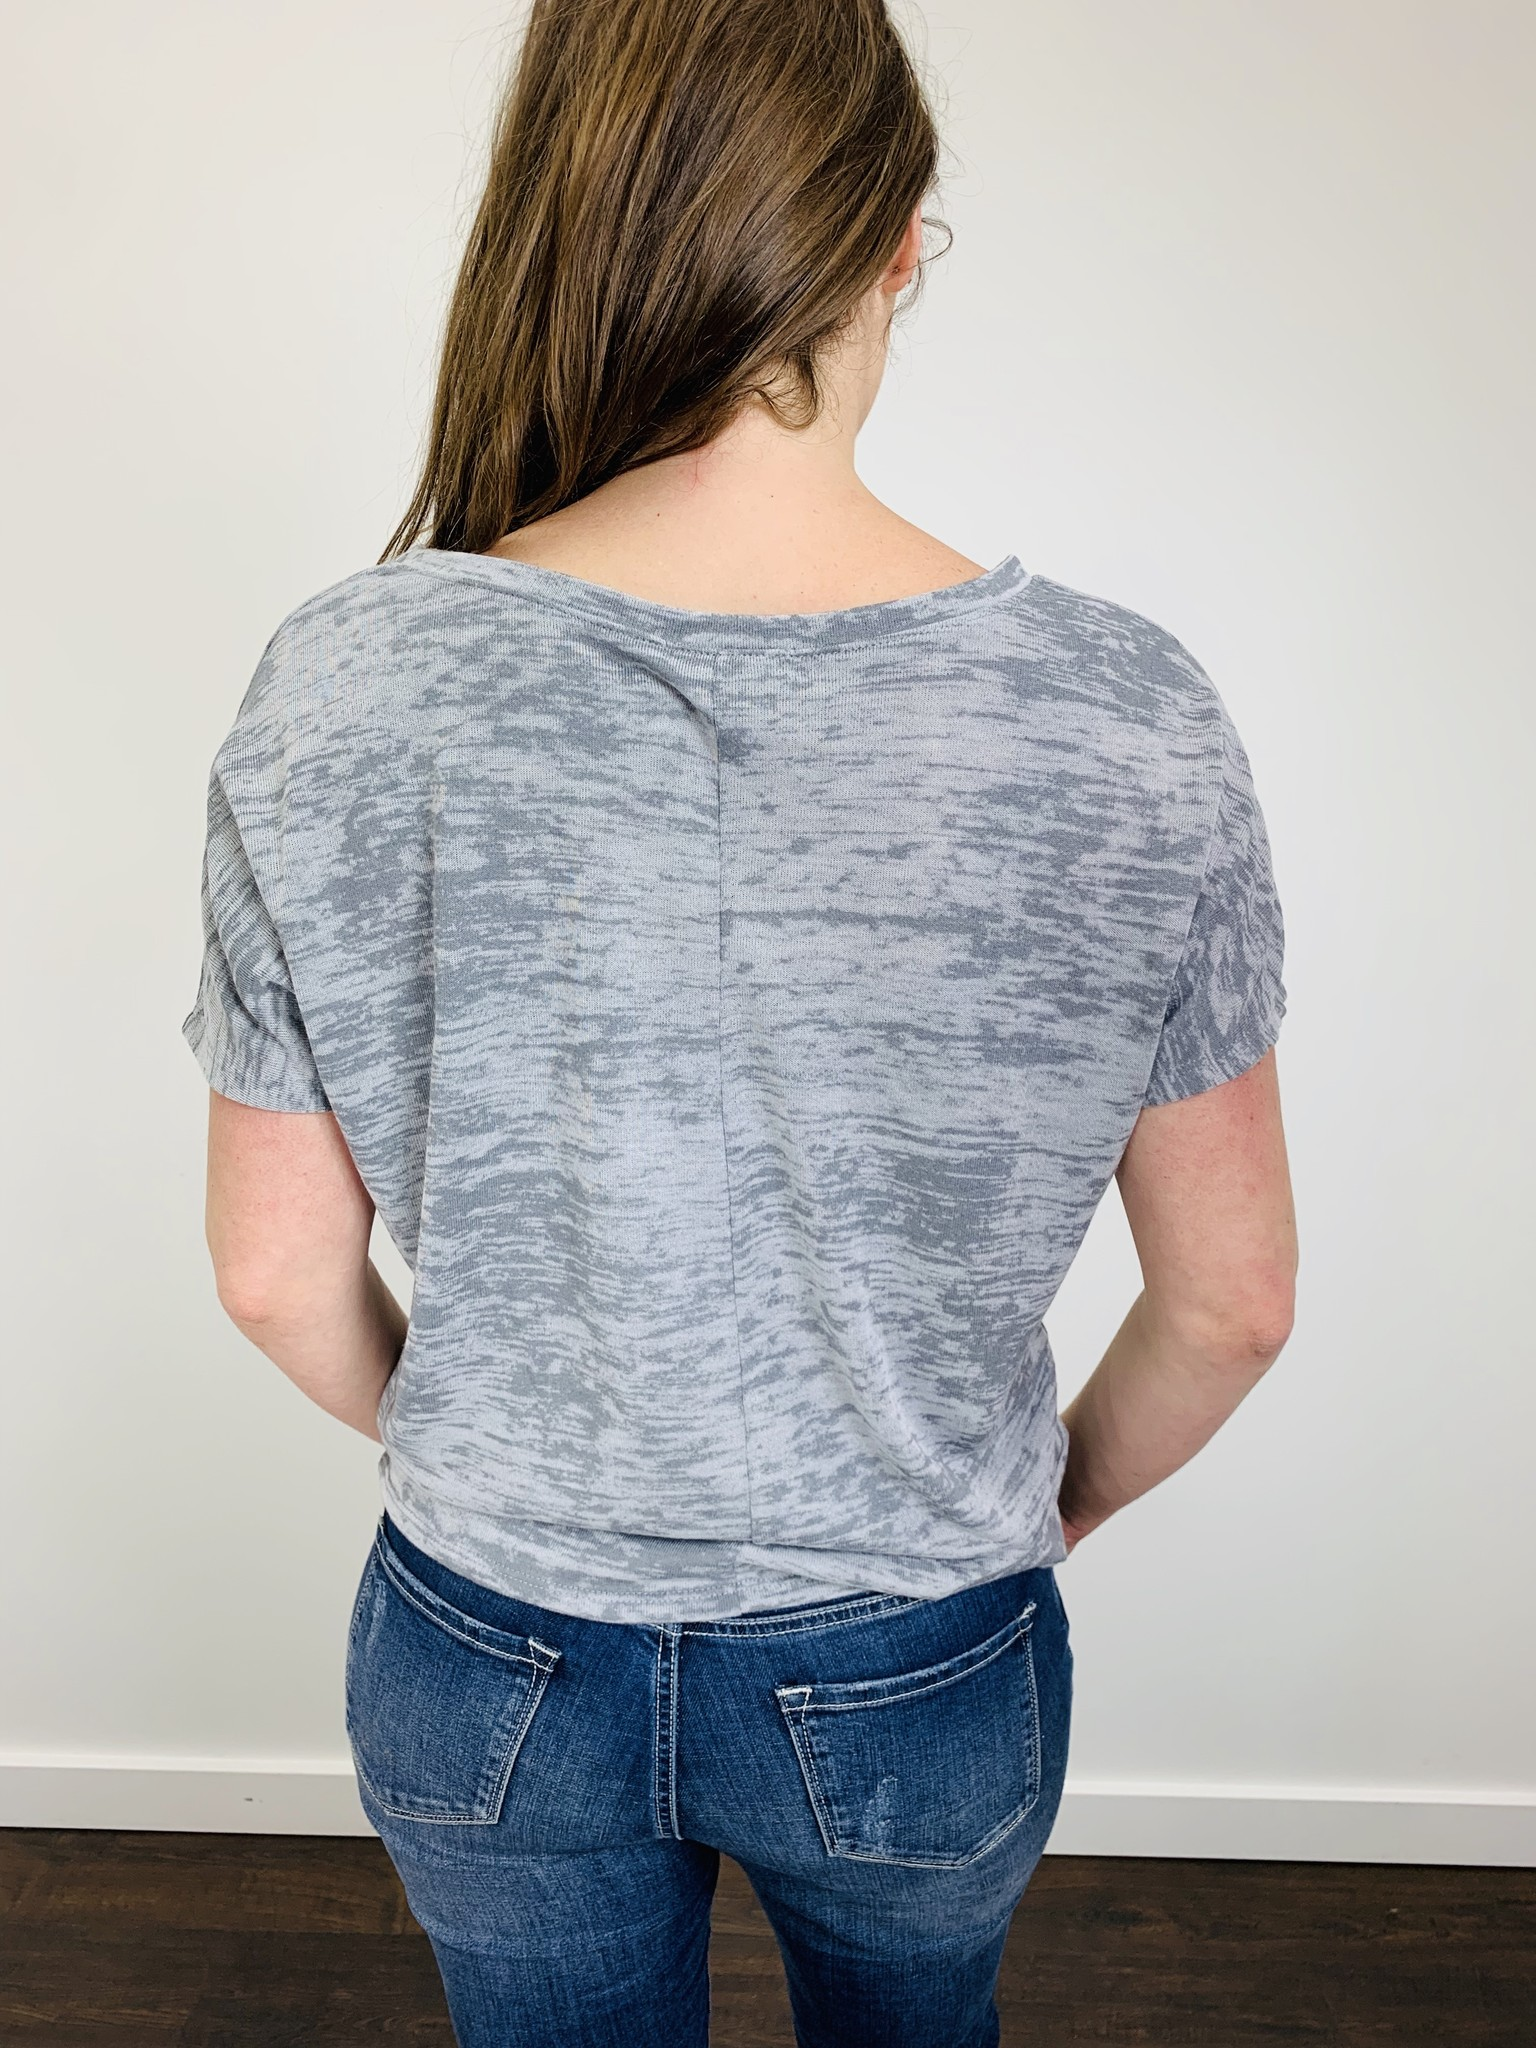 KLD Boxy Burn Out Tee in Gray